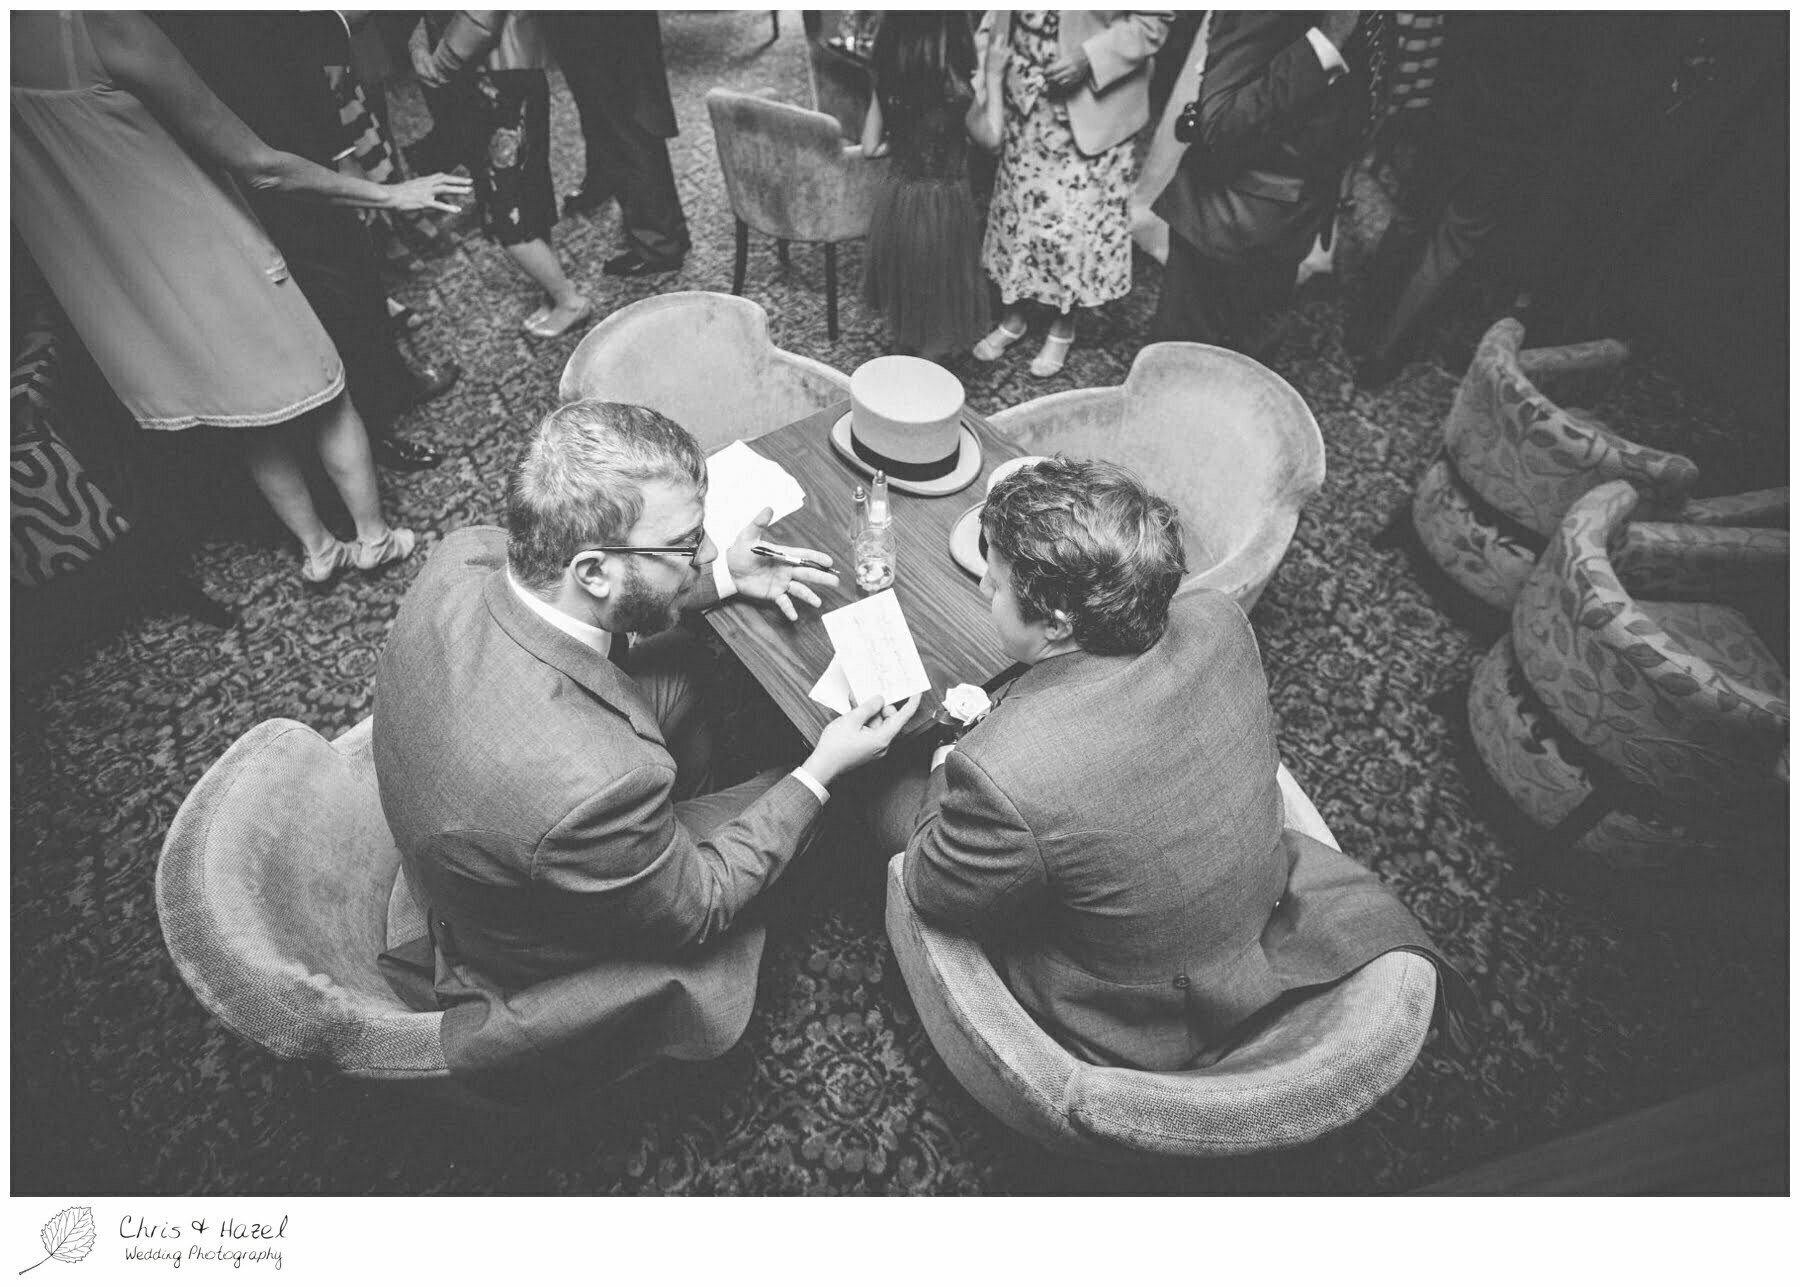 groom writing speech, documentary wedding photography, Ilkley wedding photographer, Ilkley wedding photography, The Craiglands hotel wedding photography, west Yorkshire wedding photography, chris and hazel wedding photography, emily nunwick, sam nicholson, emily nicholson,